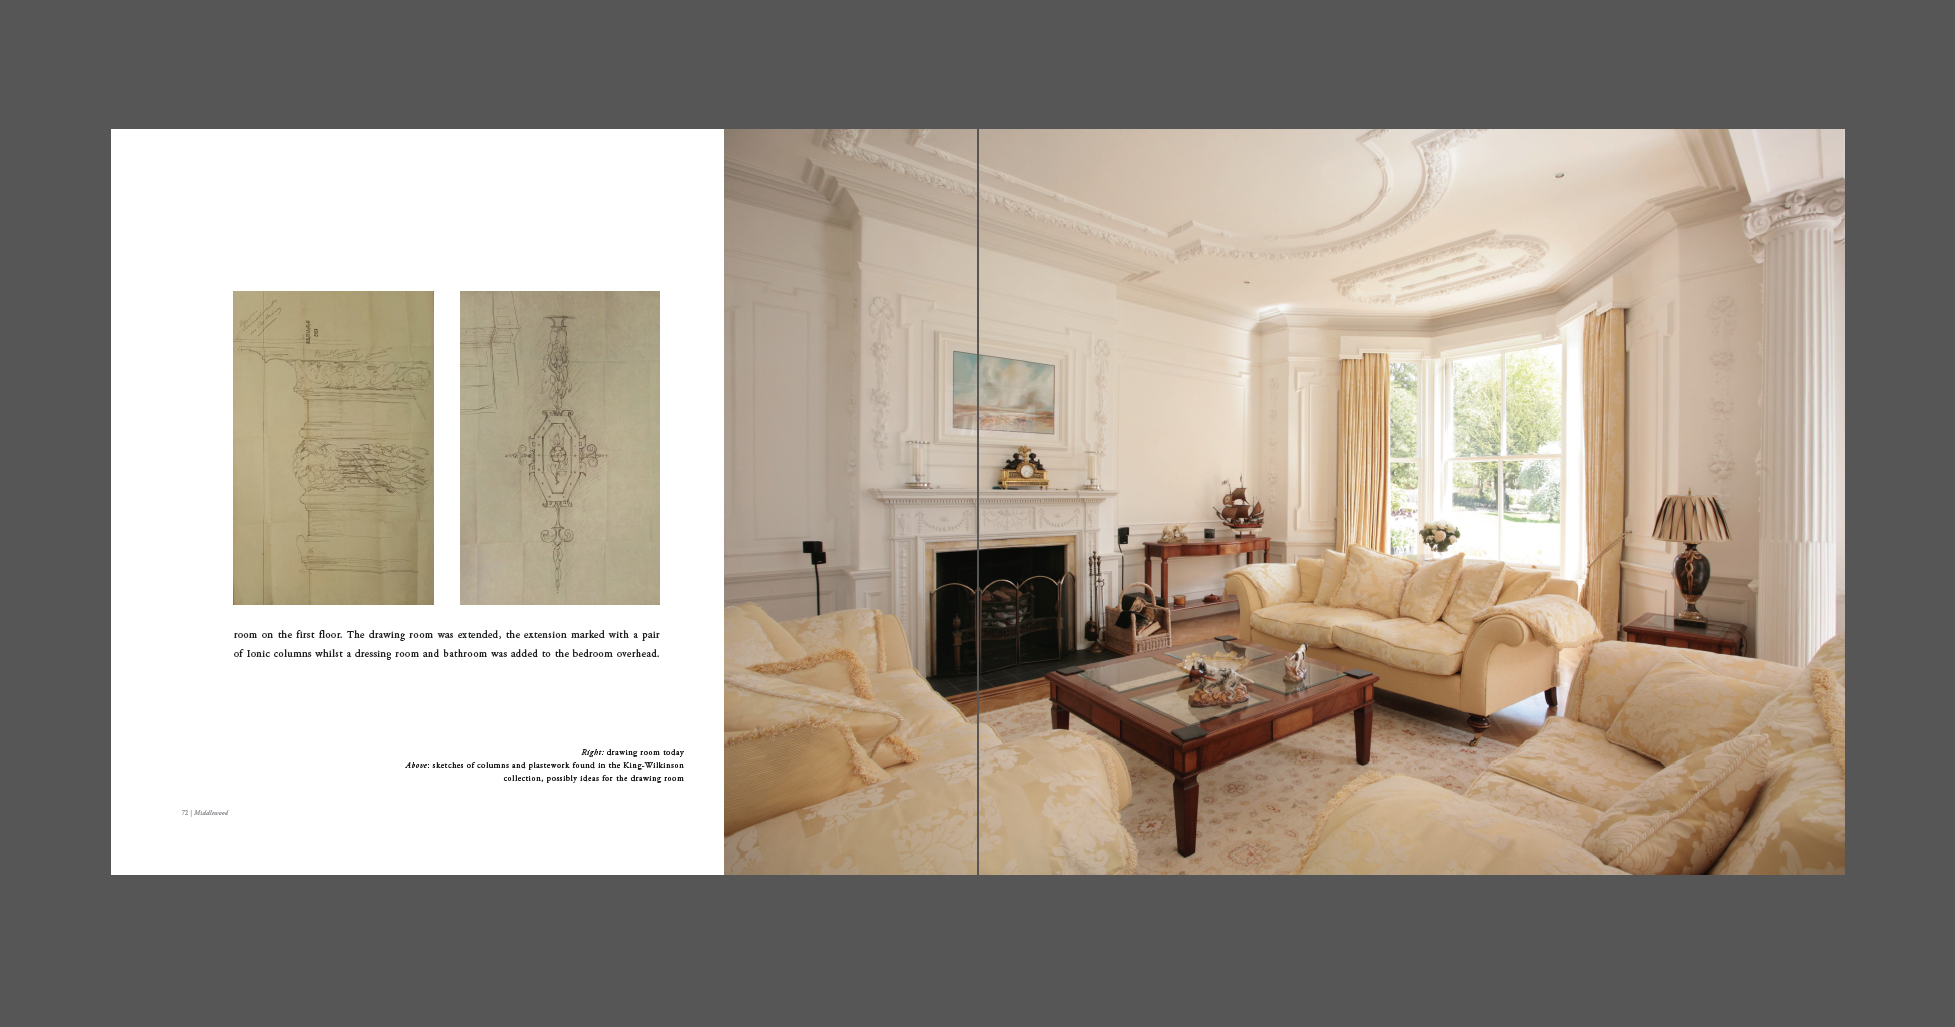 BENCHMARK_HOUSE_HISTORIES_Carol_Fulton_Middlewood_spread_72_73.jpg